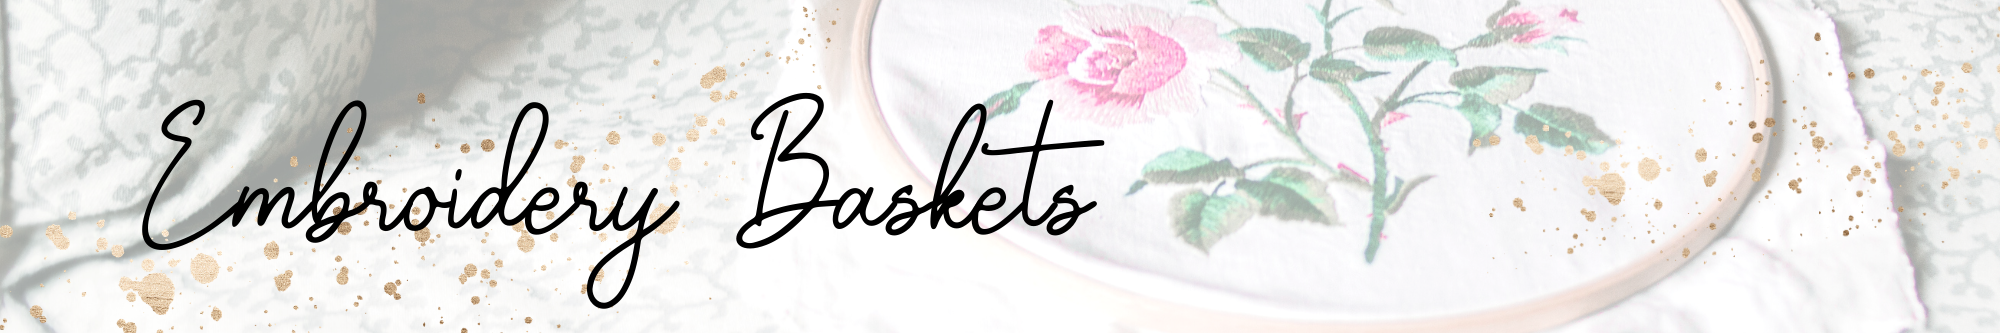 Create Your Own Cute Embroidery Baskets main article image